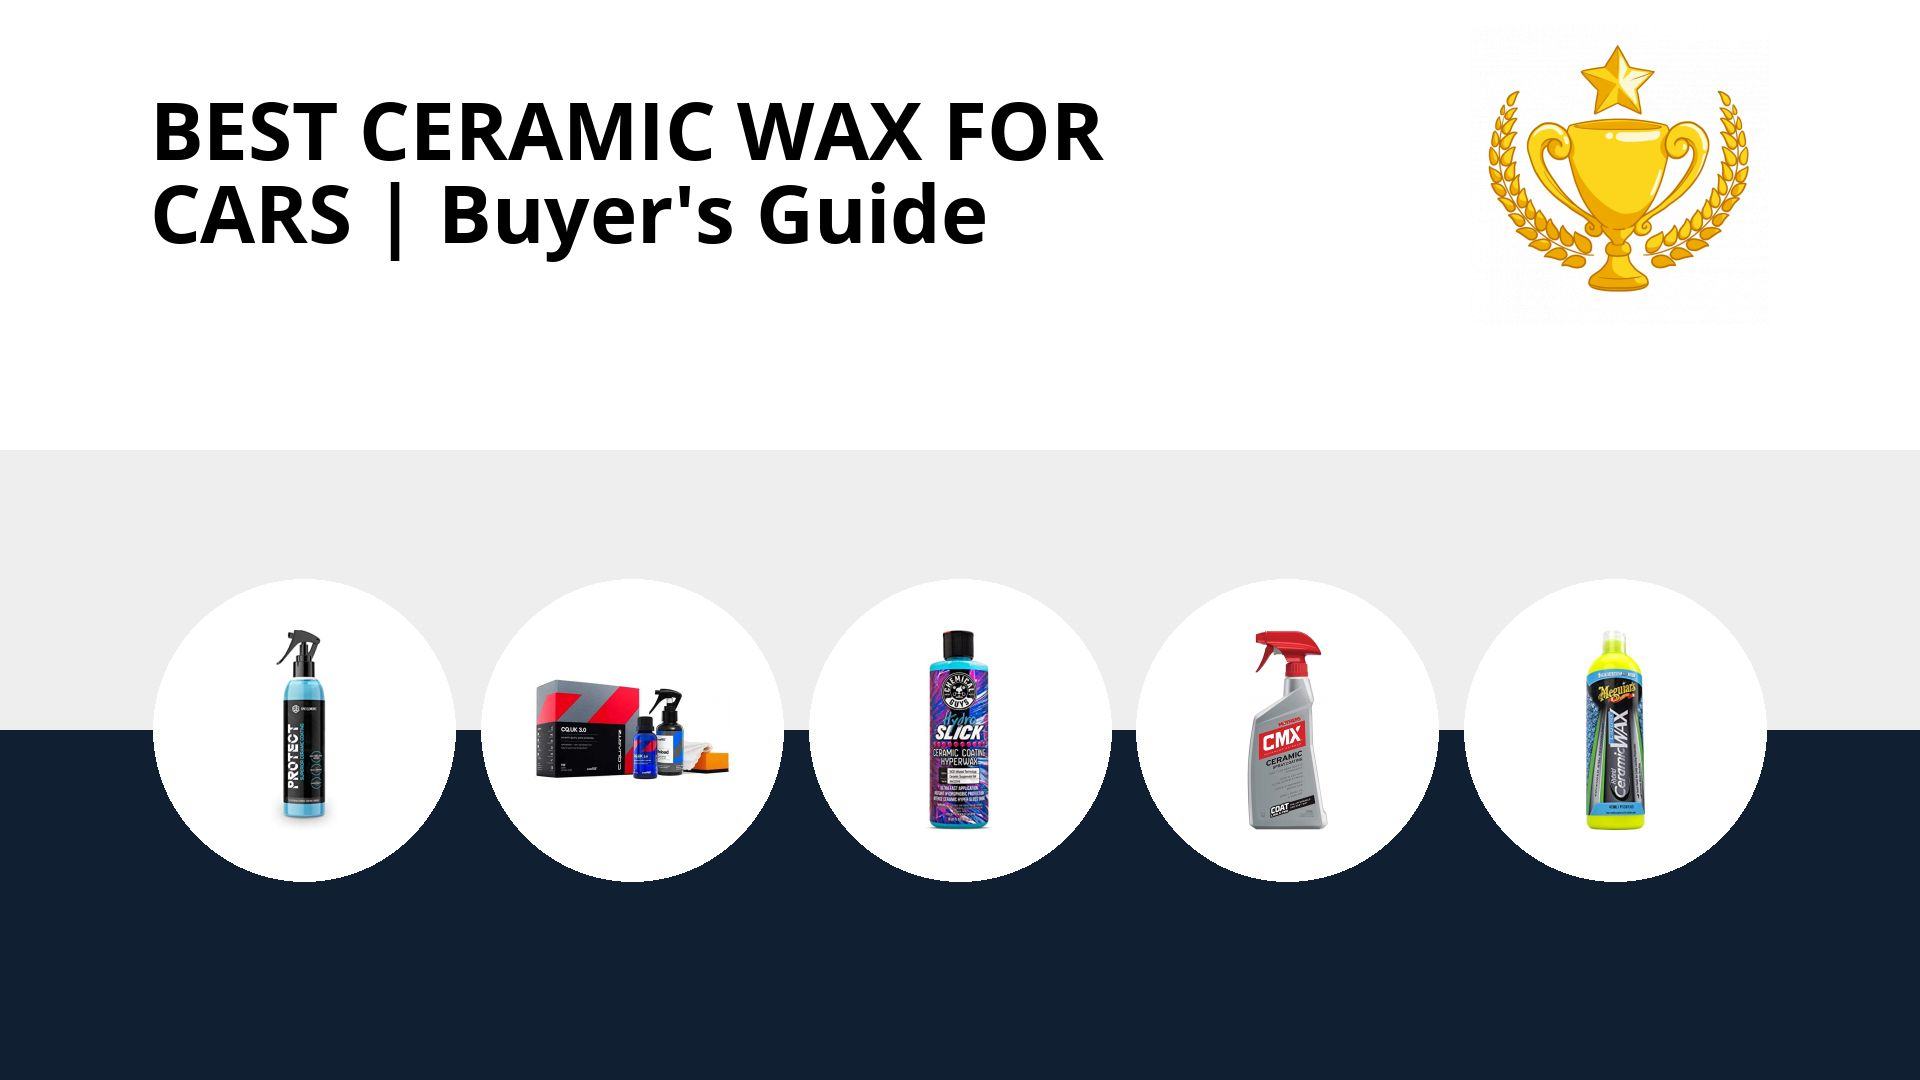 Best Ceramic Wax For Cars: image